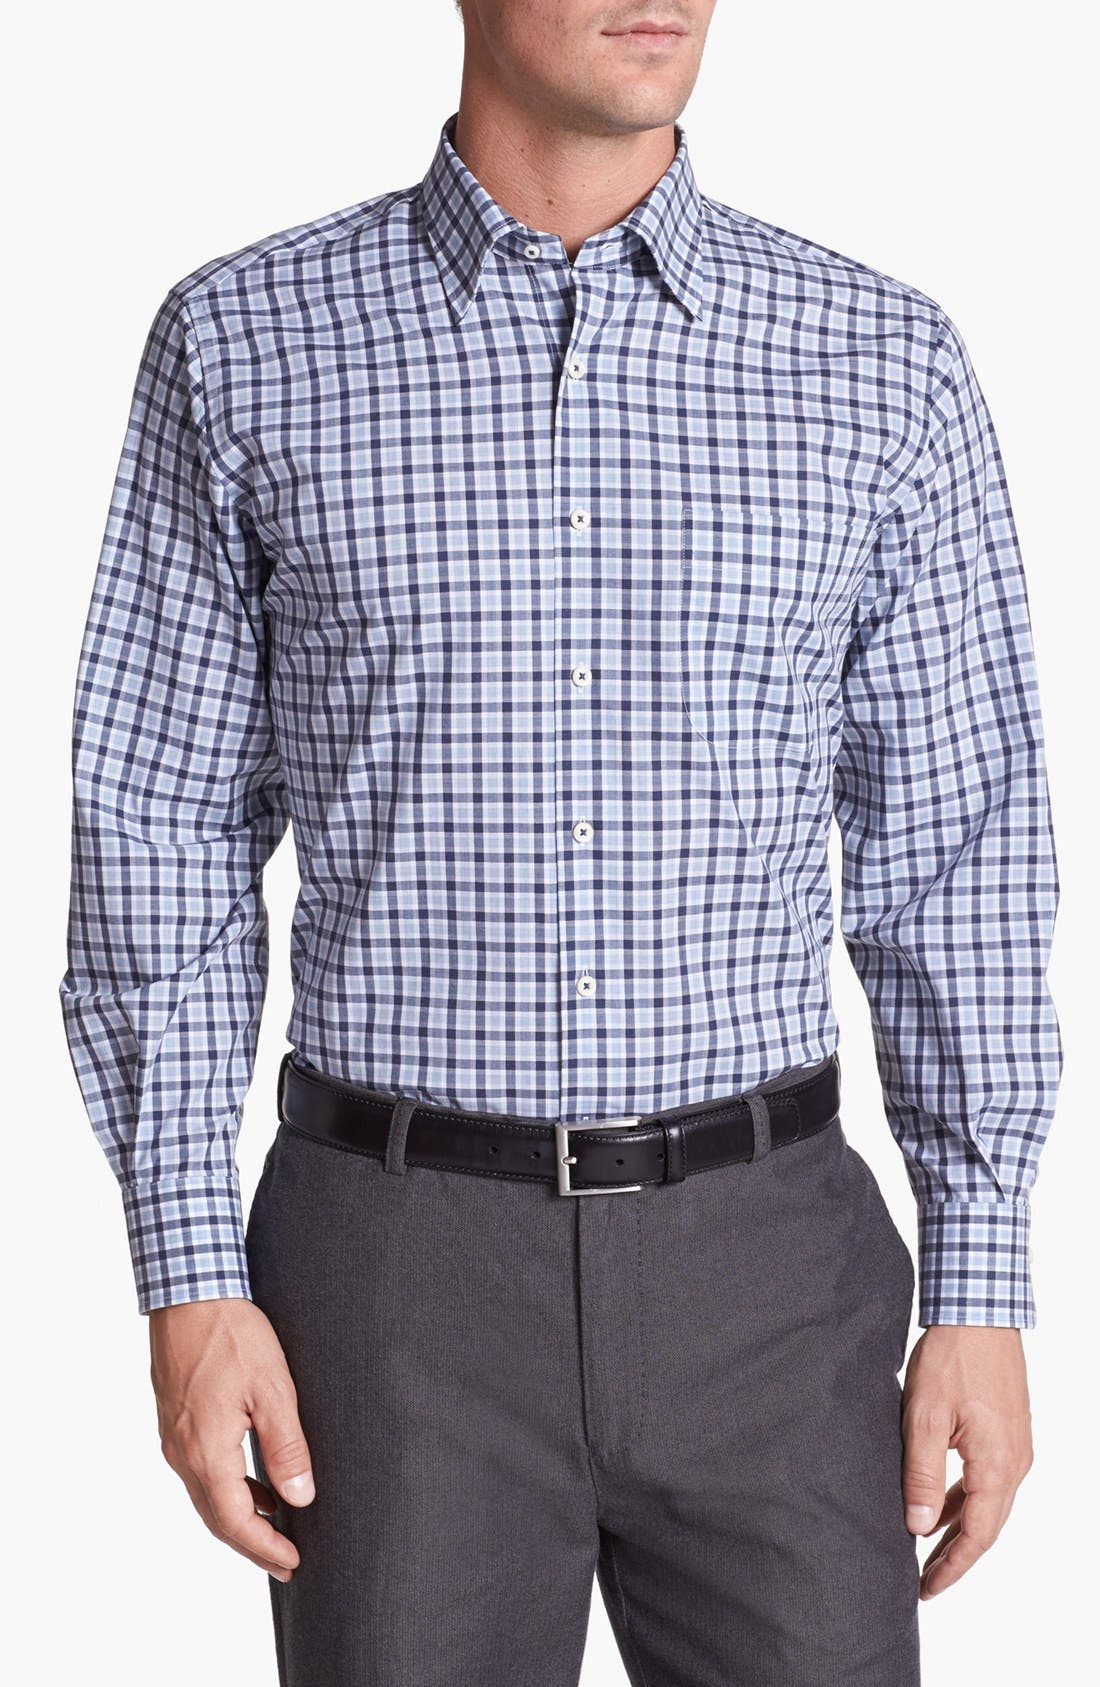 Alternate Image 1 Selected - Peter Millar 'Cambridge' Regular Fit Sport Shirt